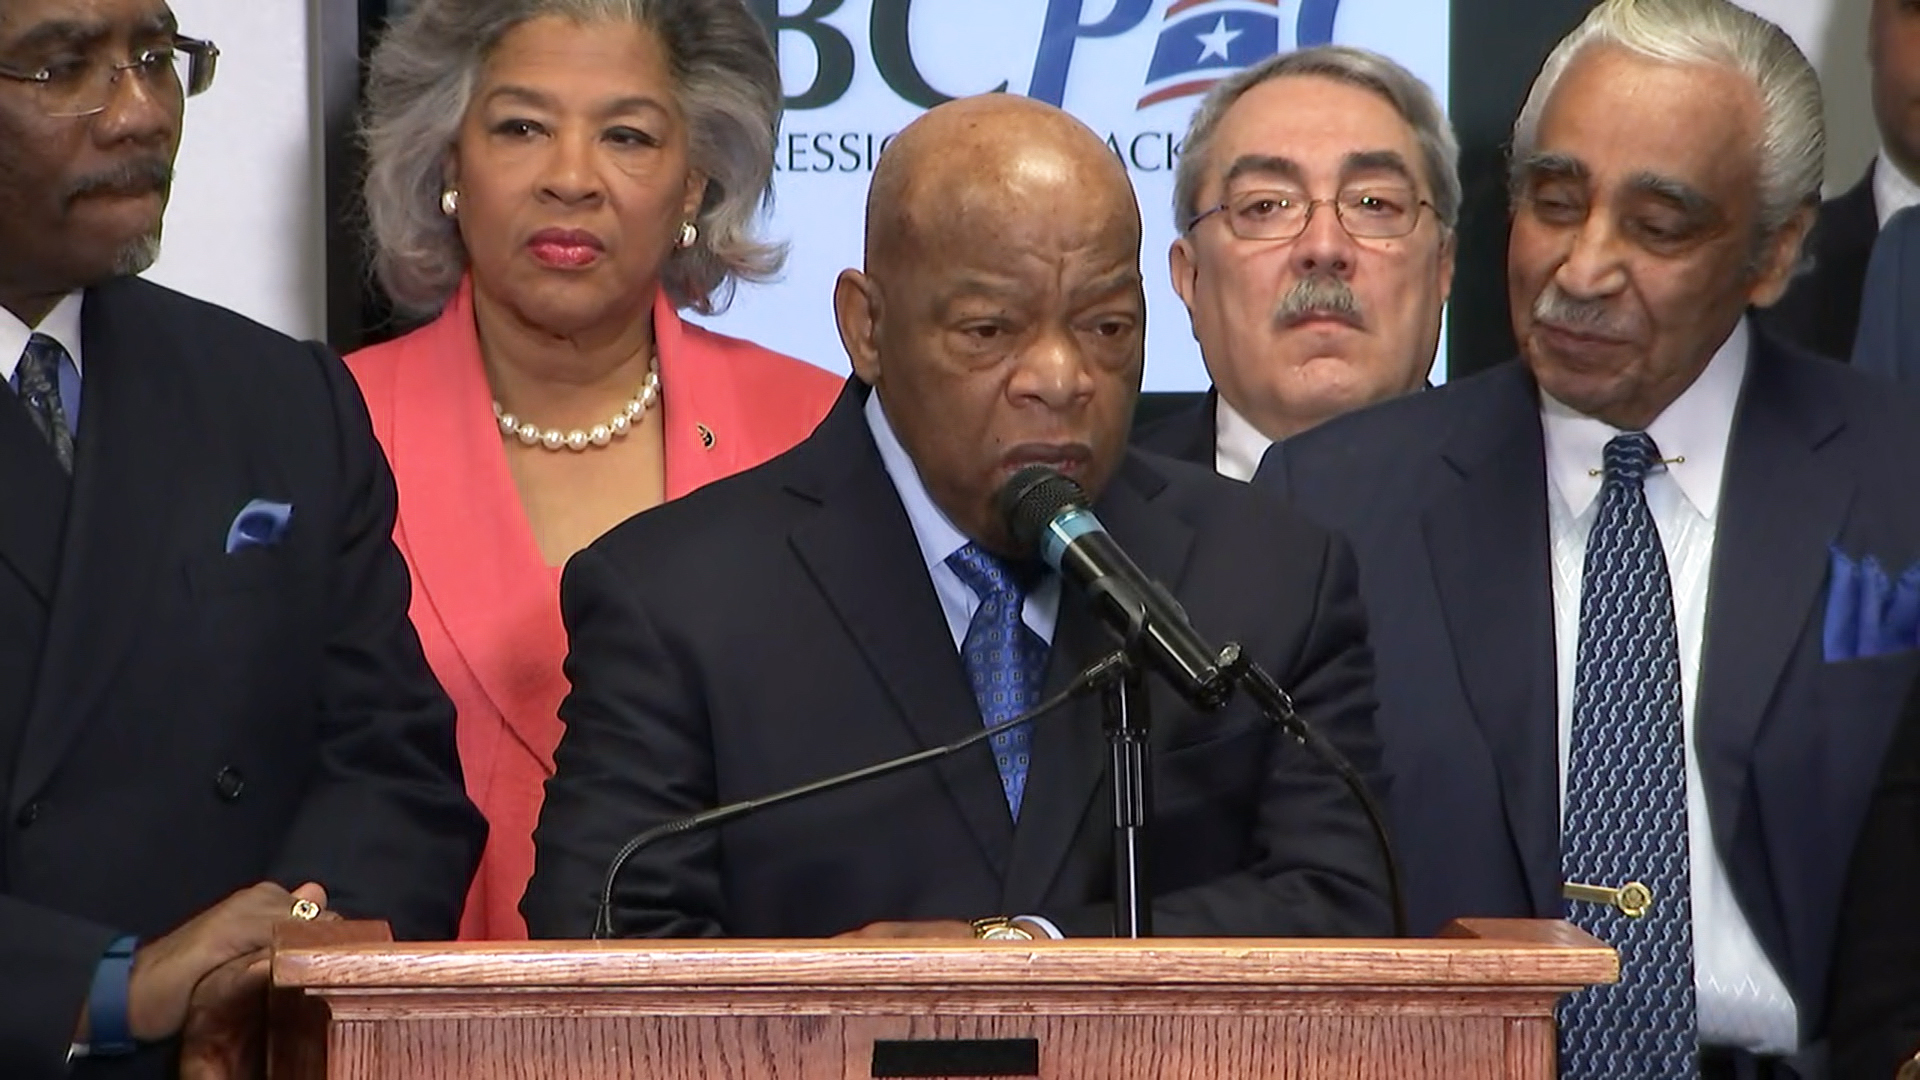 John Lewis: No One Better Prepared to Be President Than Hillary Clinton